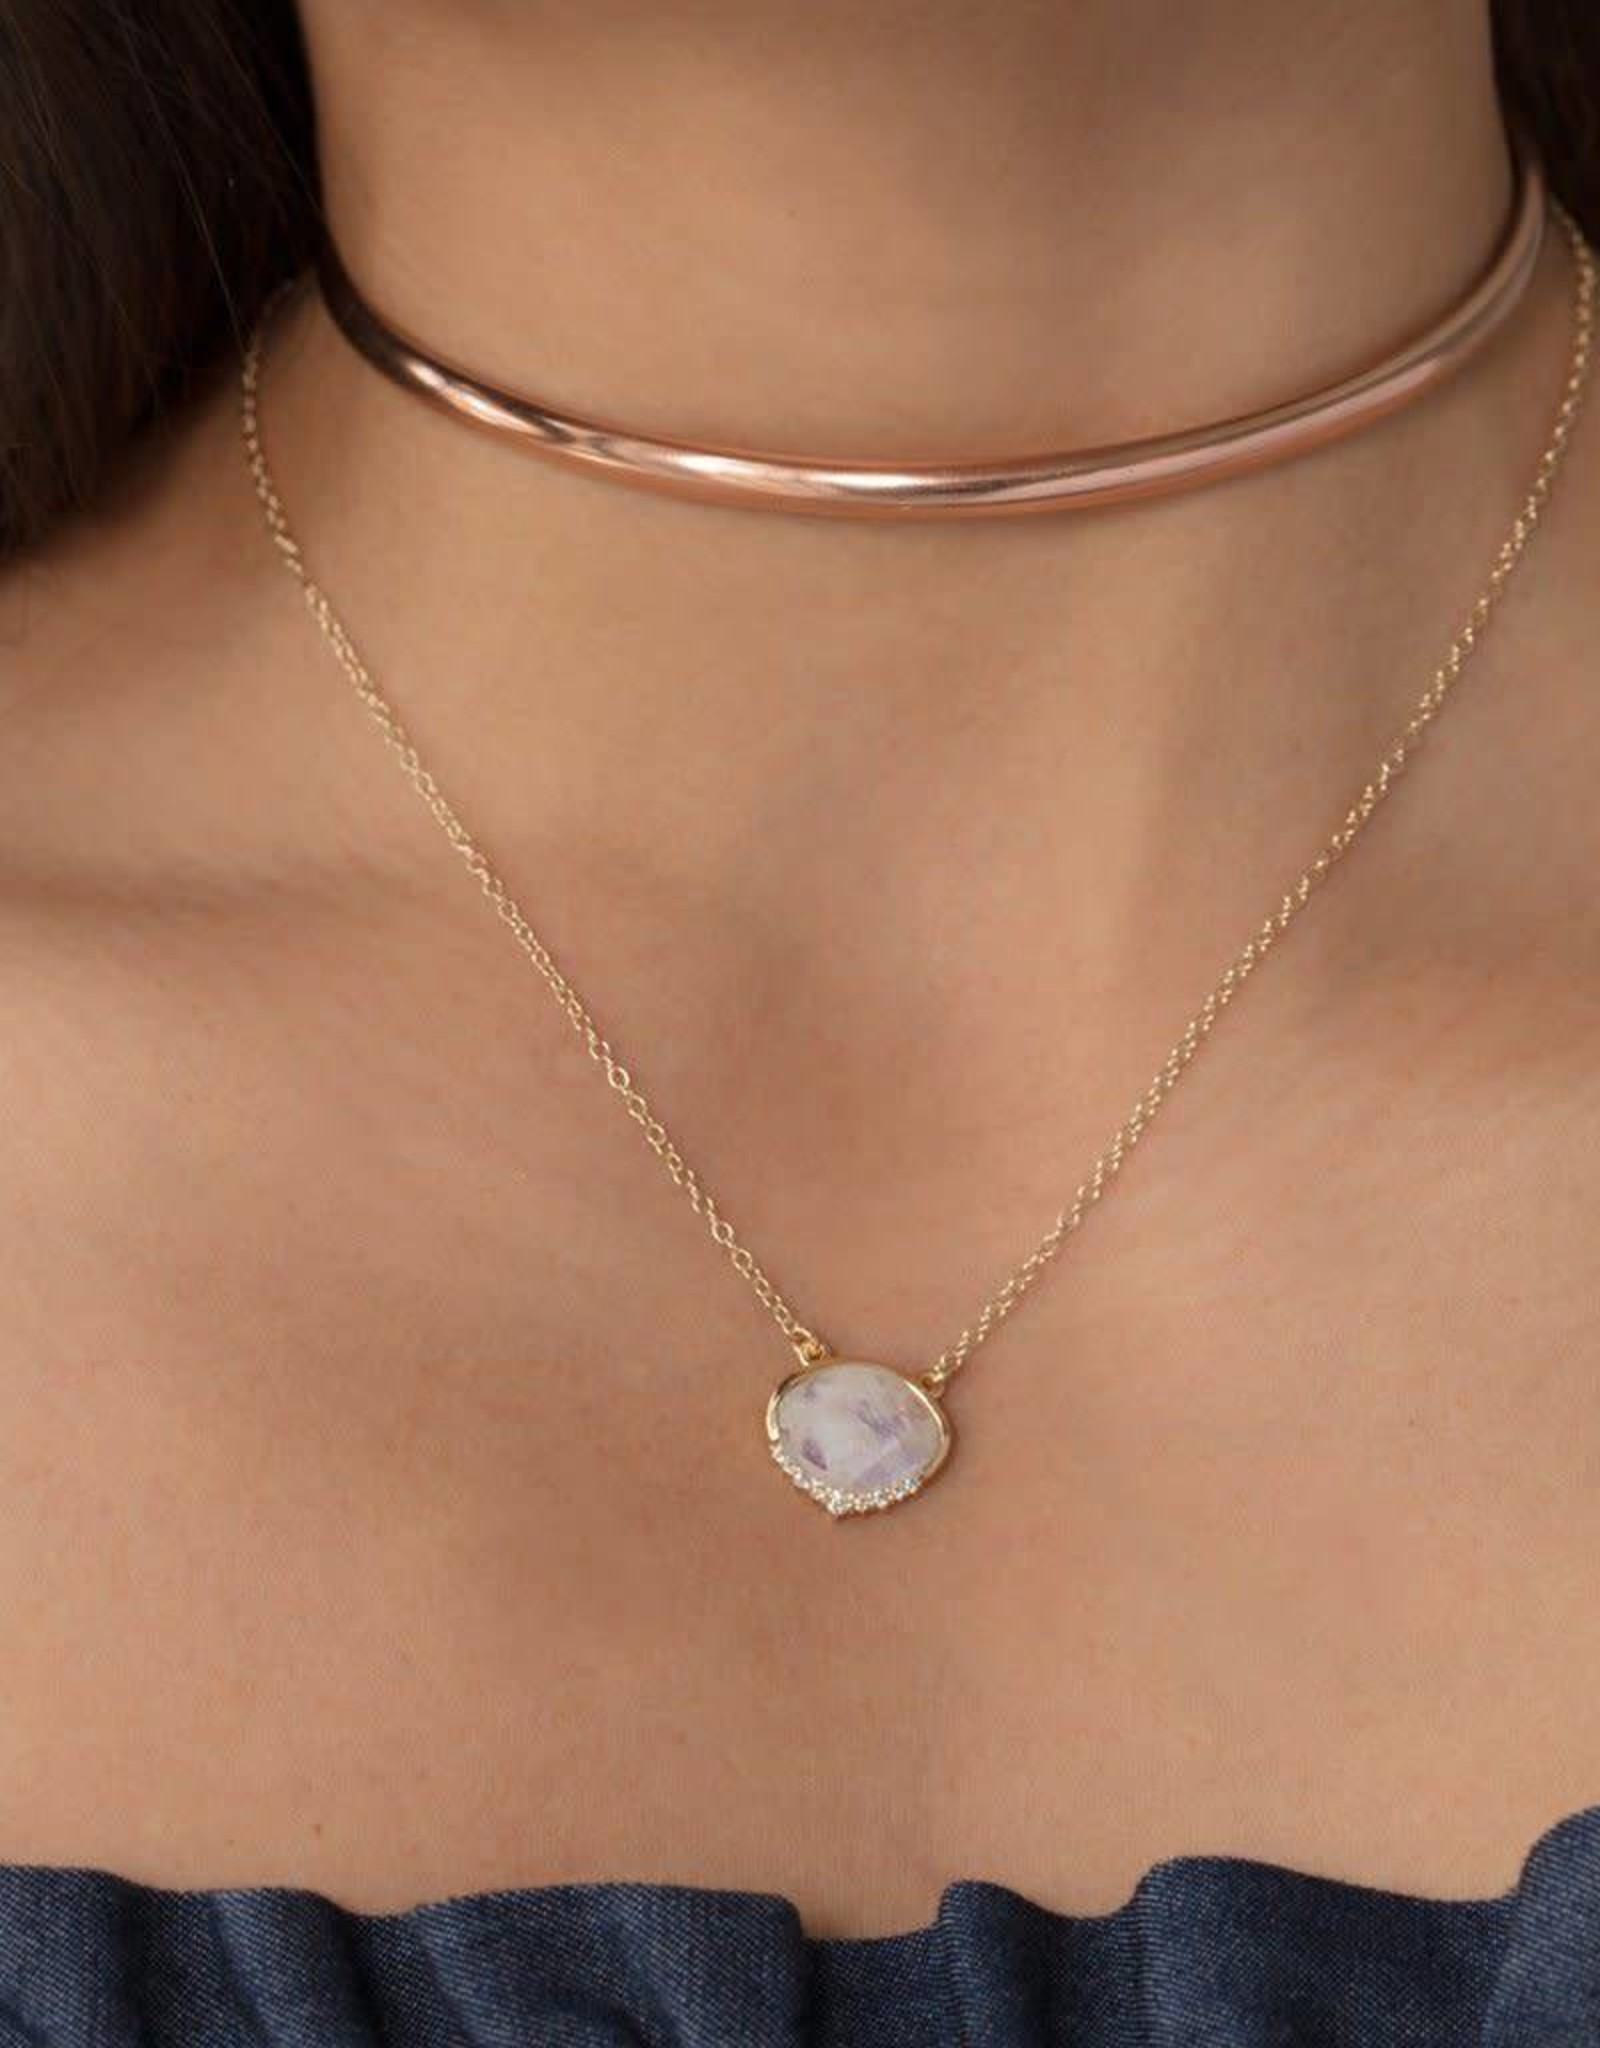 LEAH ALEXANDRA ANNI necklace, MOONSTONE